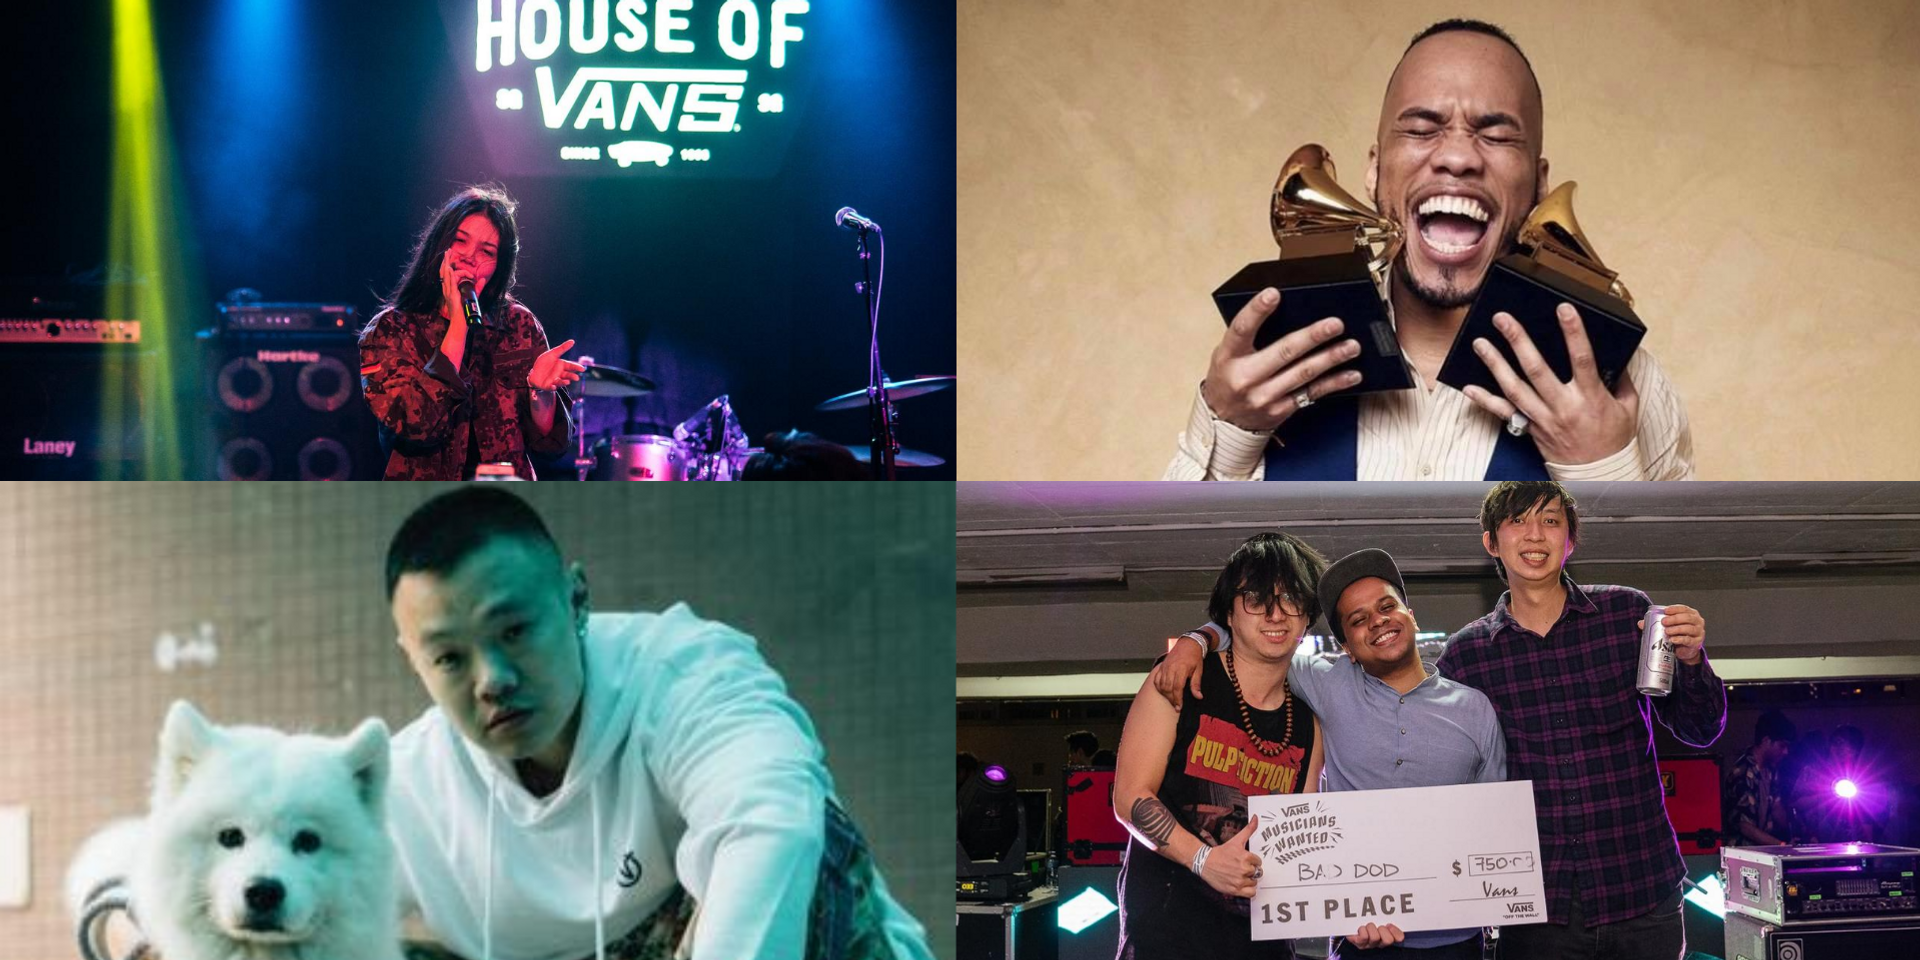 Vans Musicians Wanted 2020 returns to Singapore with online competition and guest judges, Anderson .Paak, Bohan Phoenix, J.I.D, and more